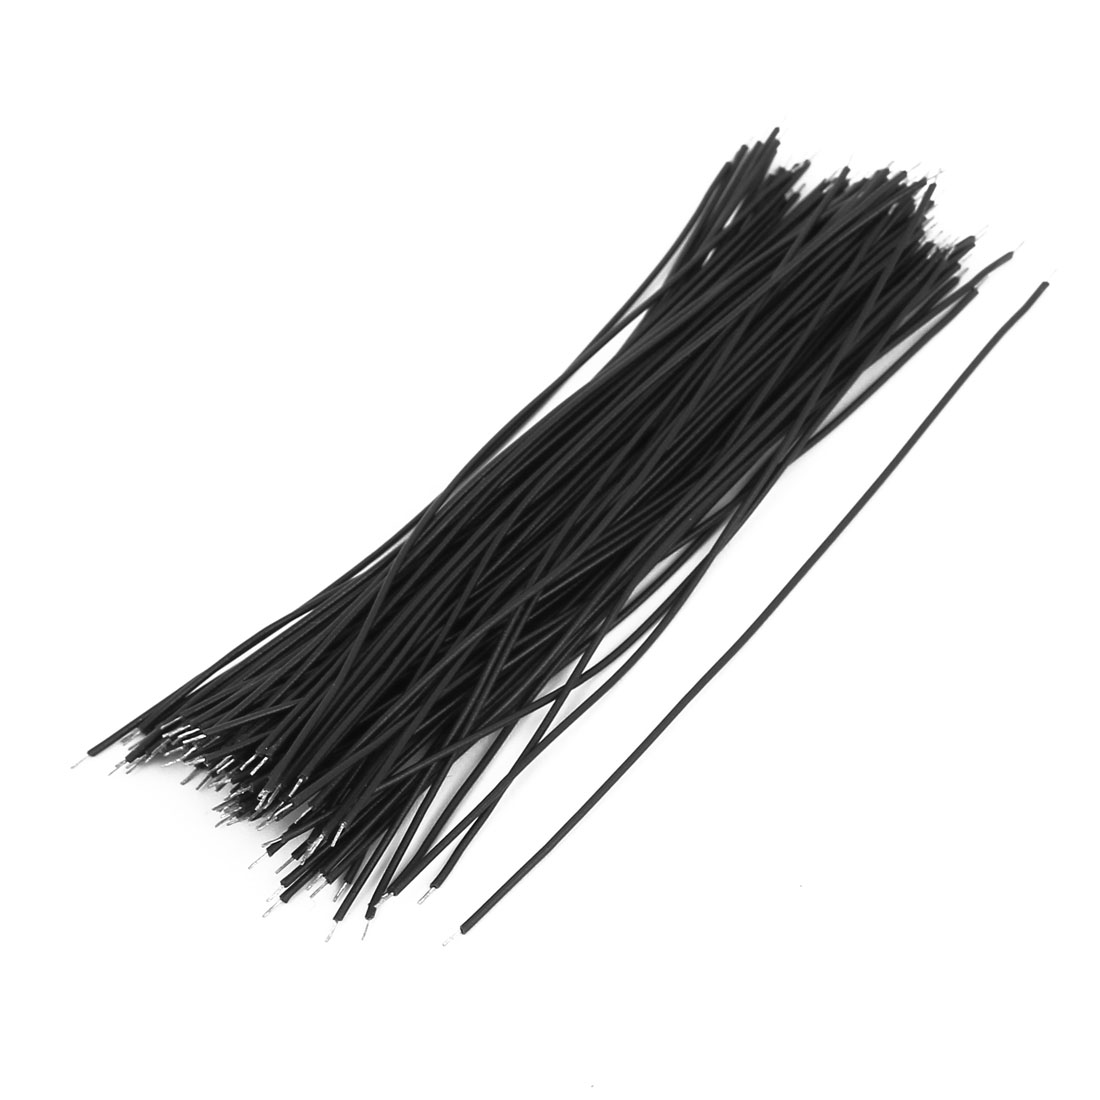 0.7mm x 100mm Dual Head Electric Insulated Flexible PVC Wire Cable Black 100Pcs